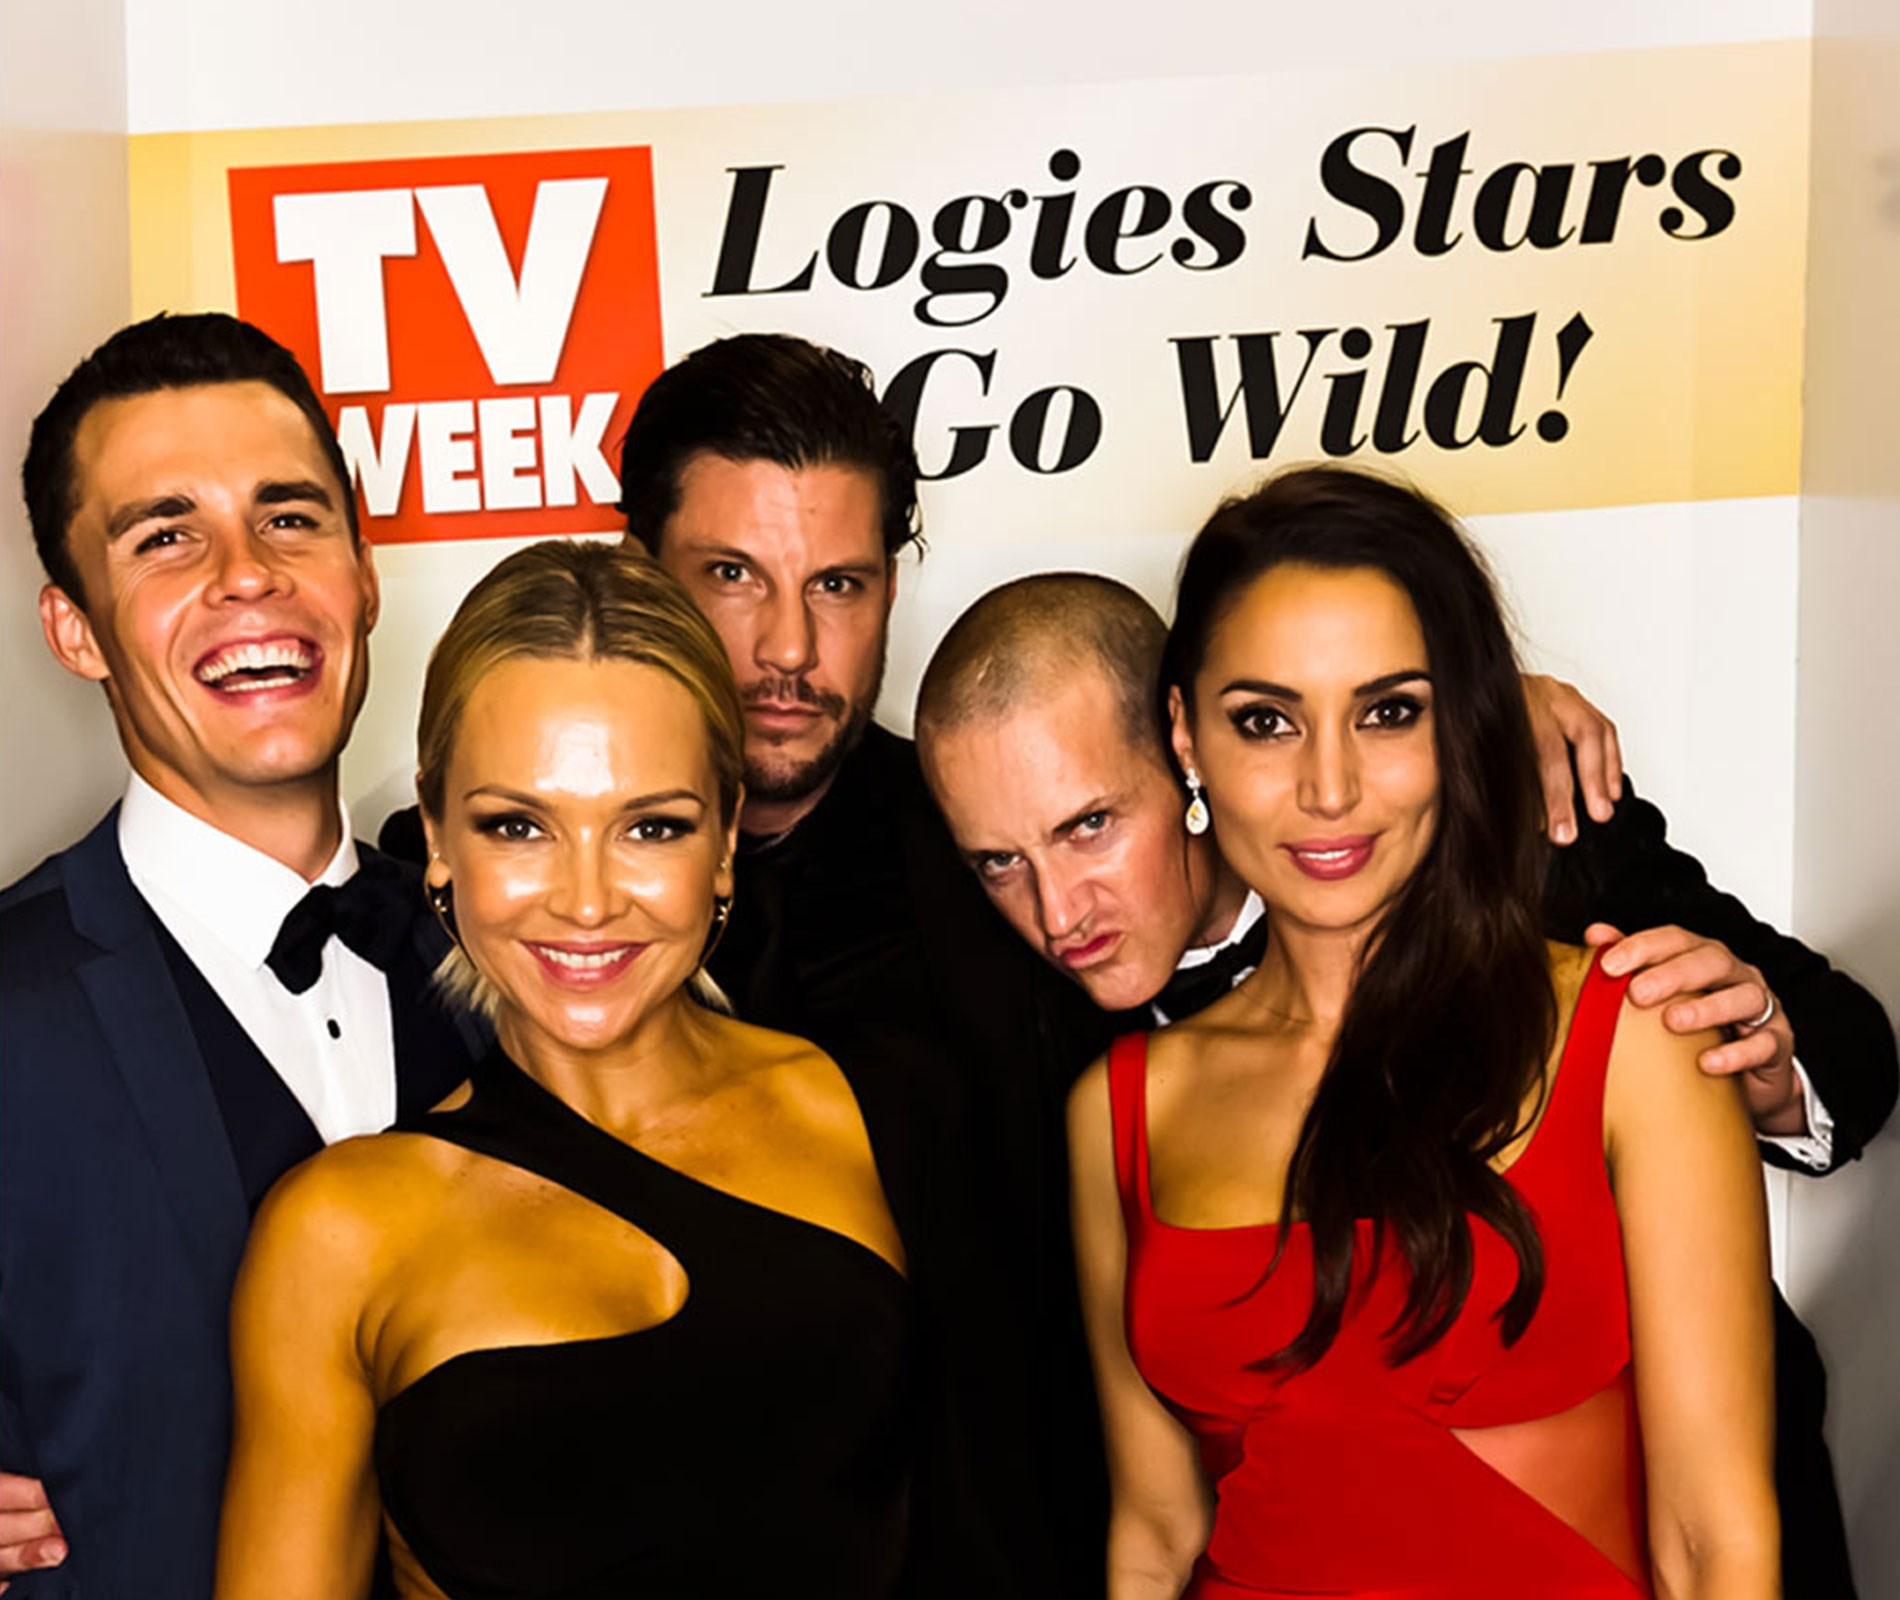 *Neighbours* stars Andrew Morley and Carla Bonner with *The Bachelor's* Sam Wood and Snezana Markoski and Jules Lund.